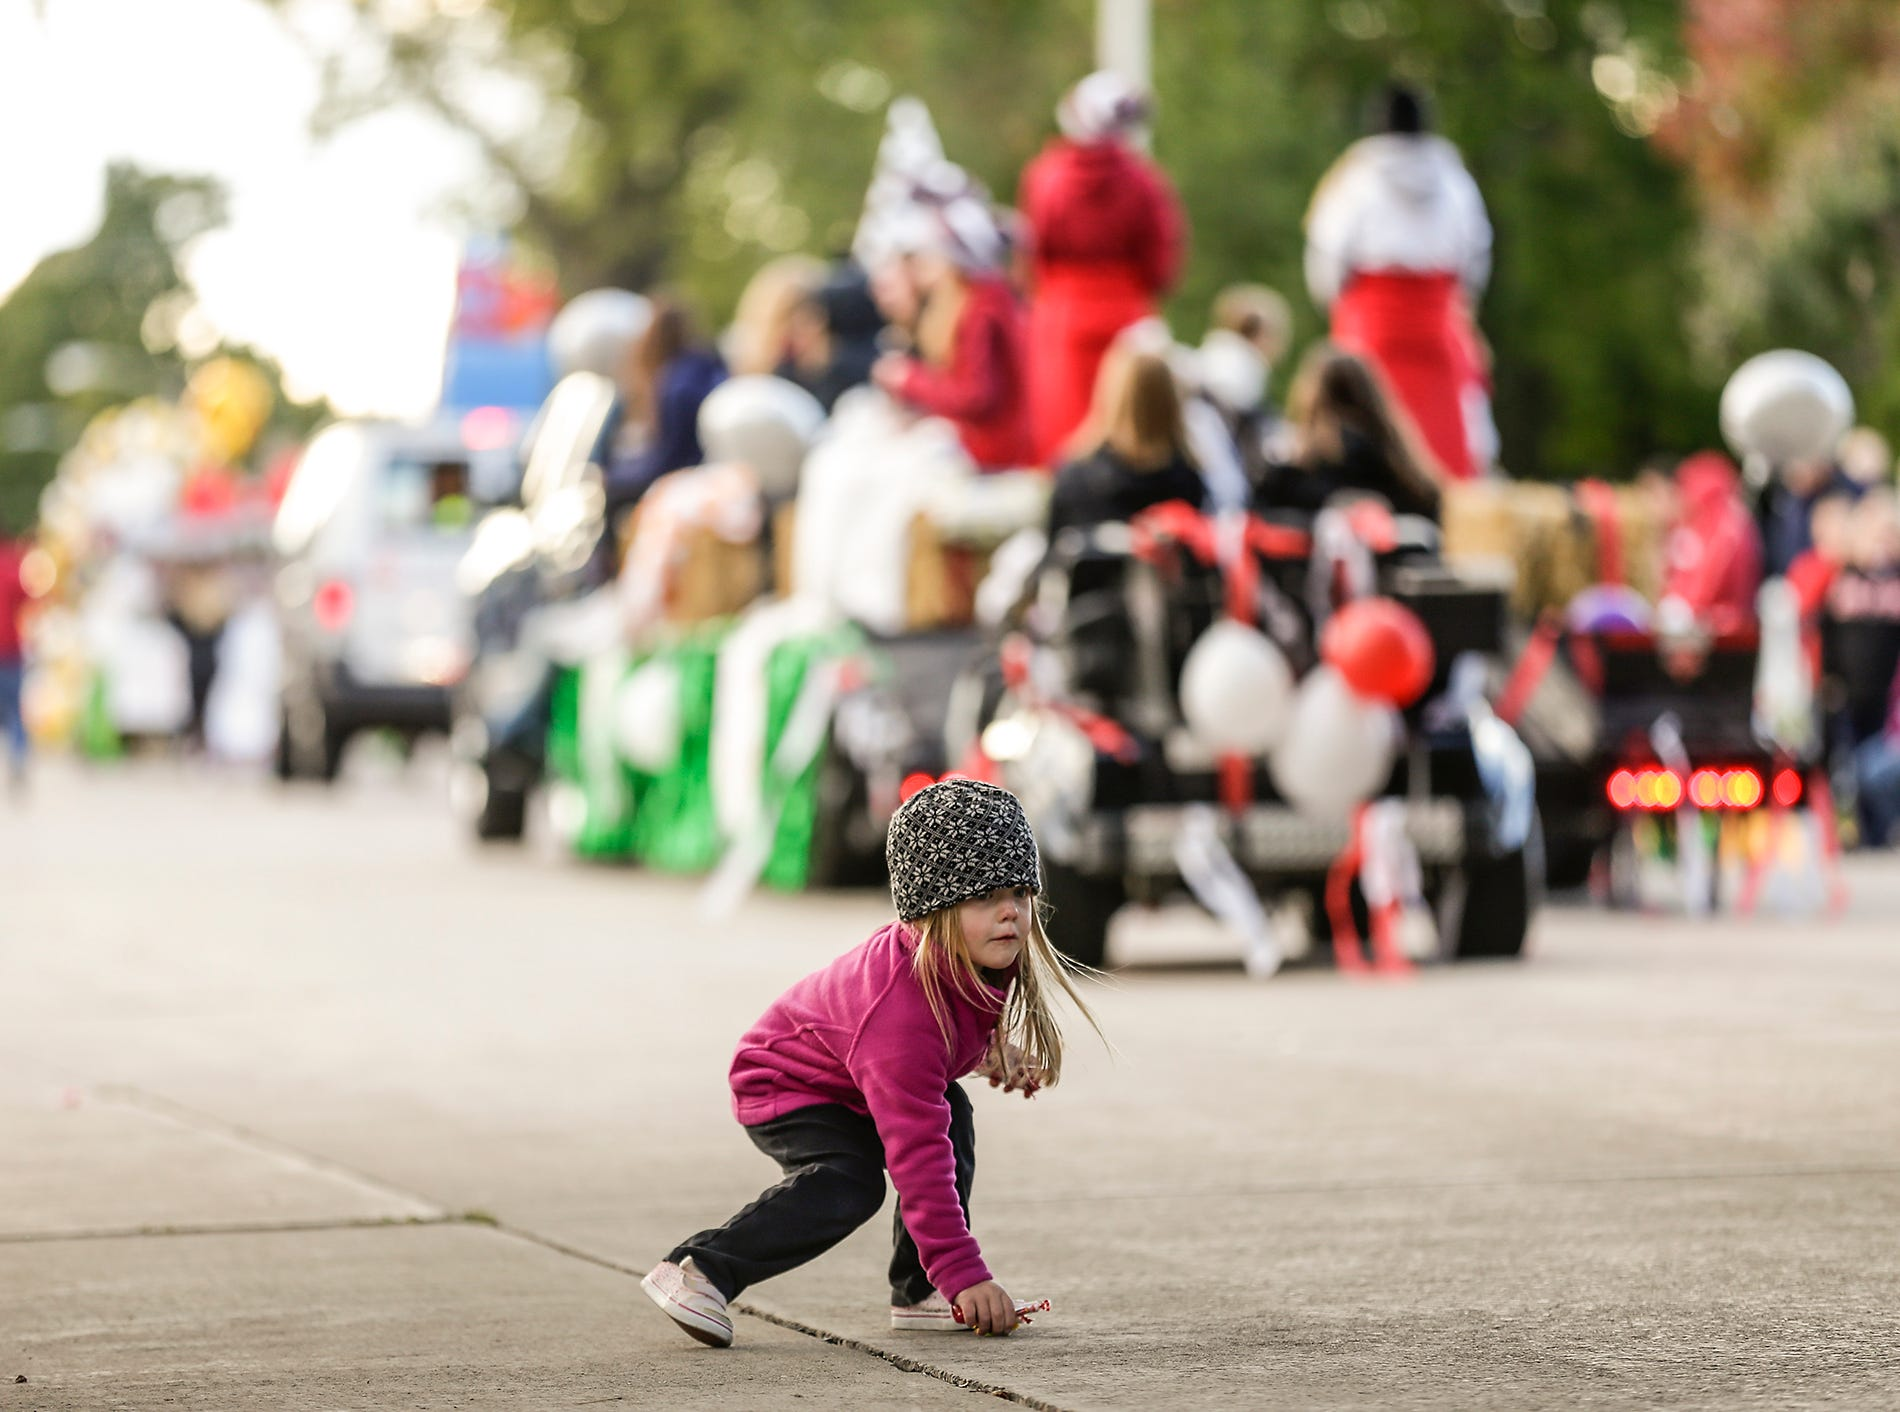 Kinsley Mischo, 3, of Fond du Lac picks up candy during the Fond du Lac High School football homecoming parade Friday, Sept. 28, 2018, which went down portions of Martin Avenue and Ninth Street in Fond du Lac, Wisconsin.